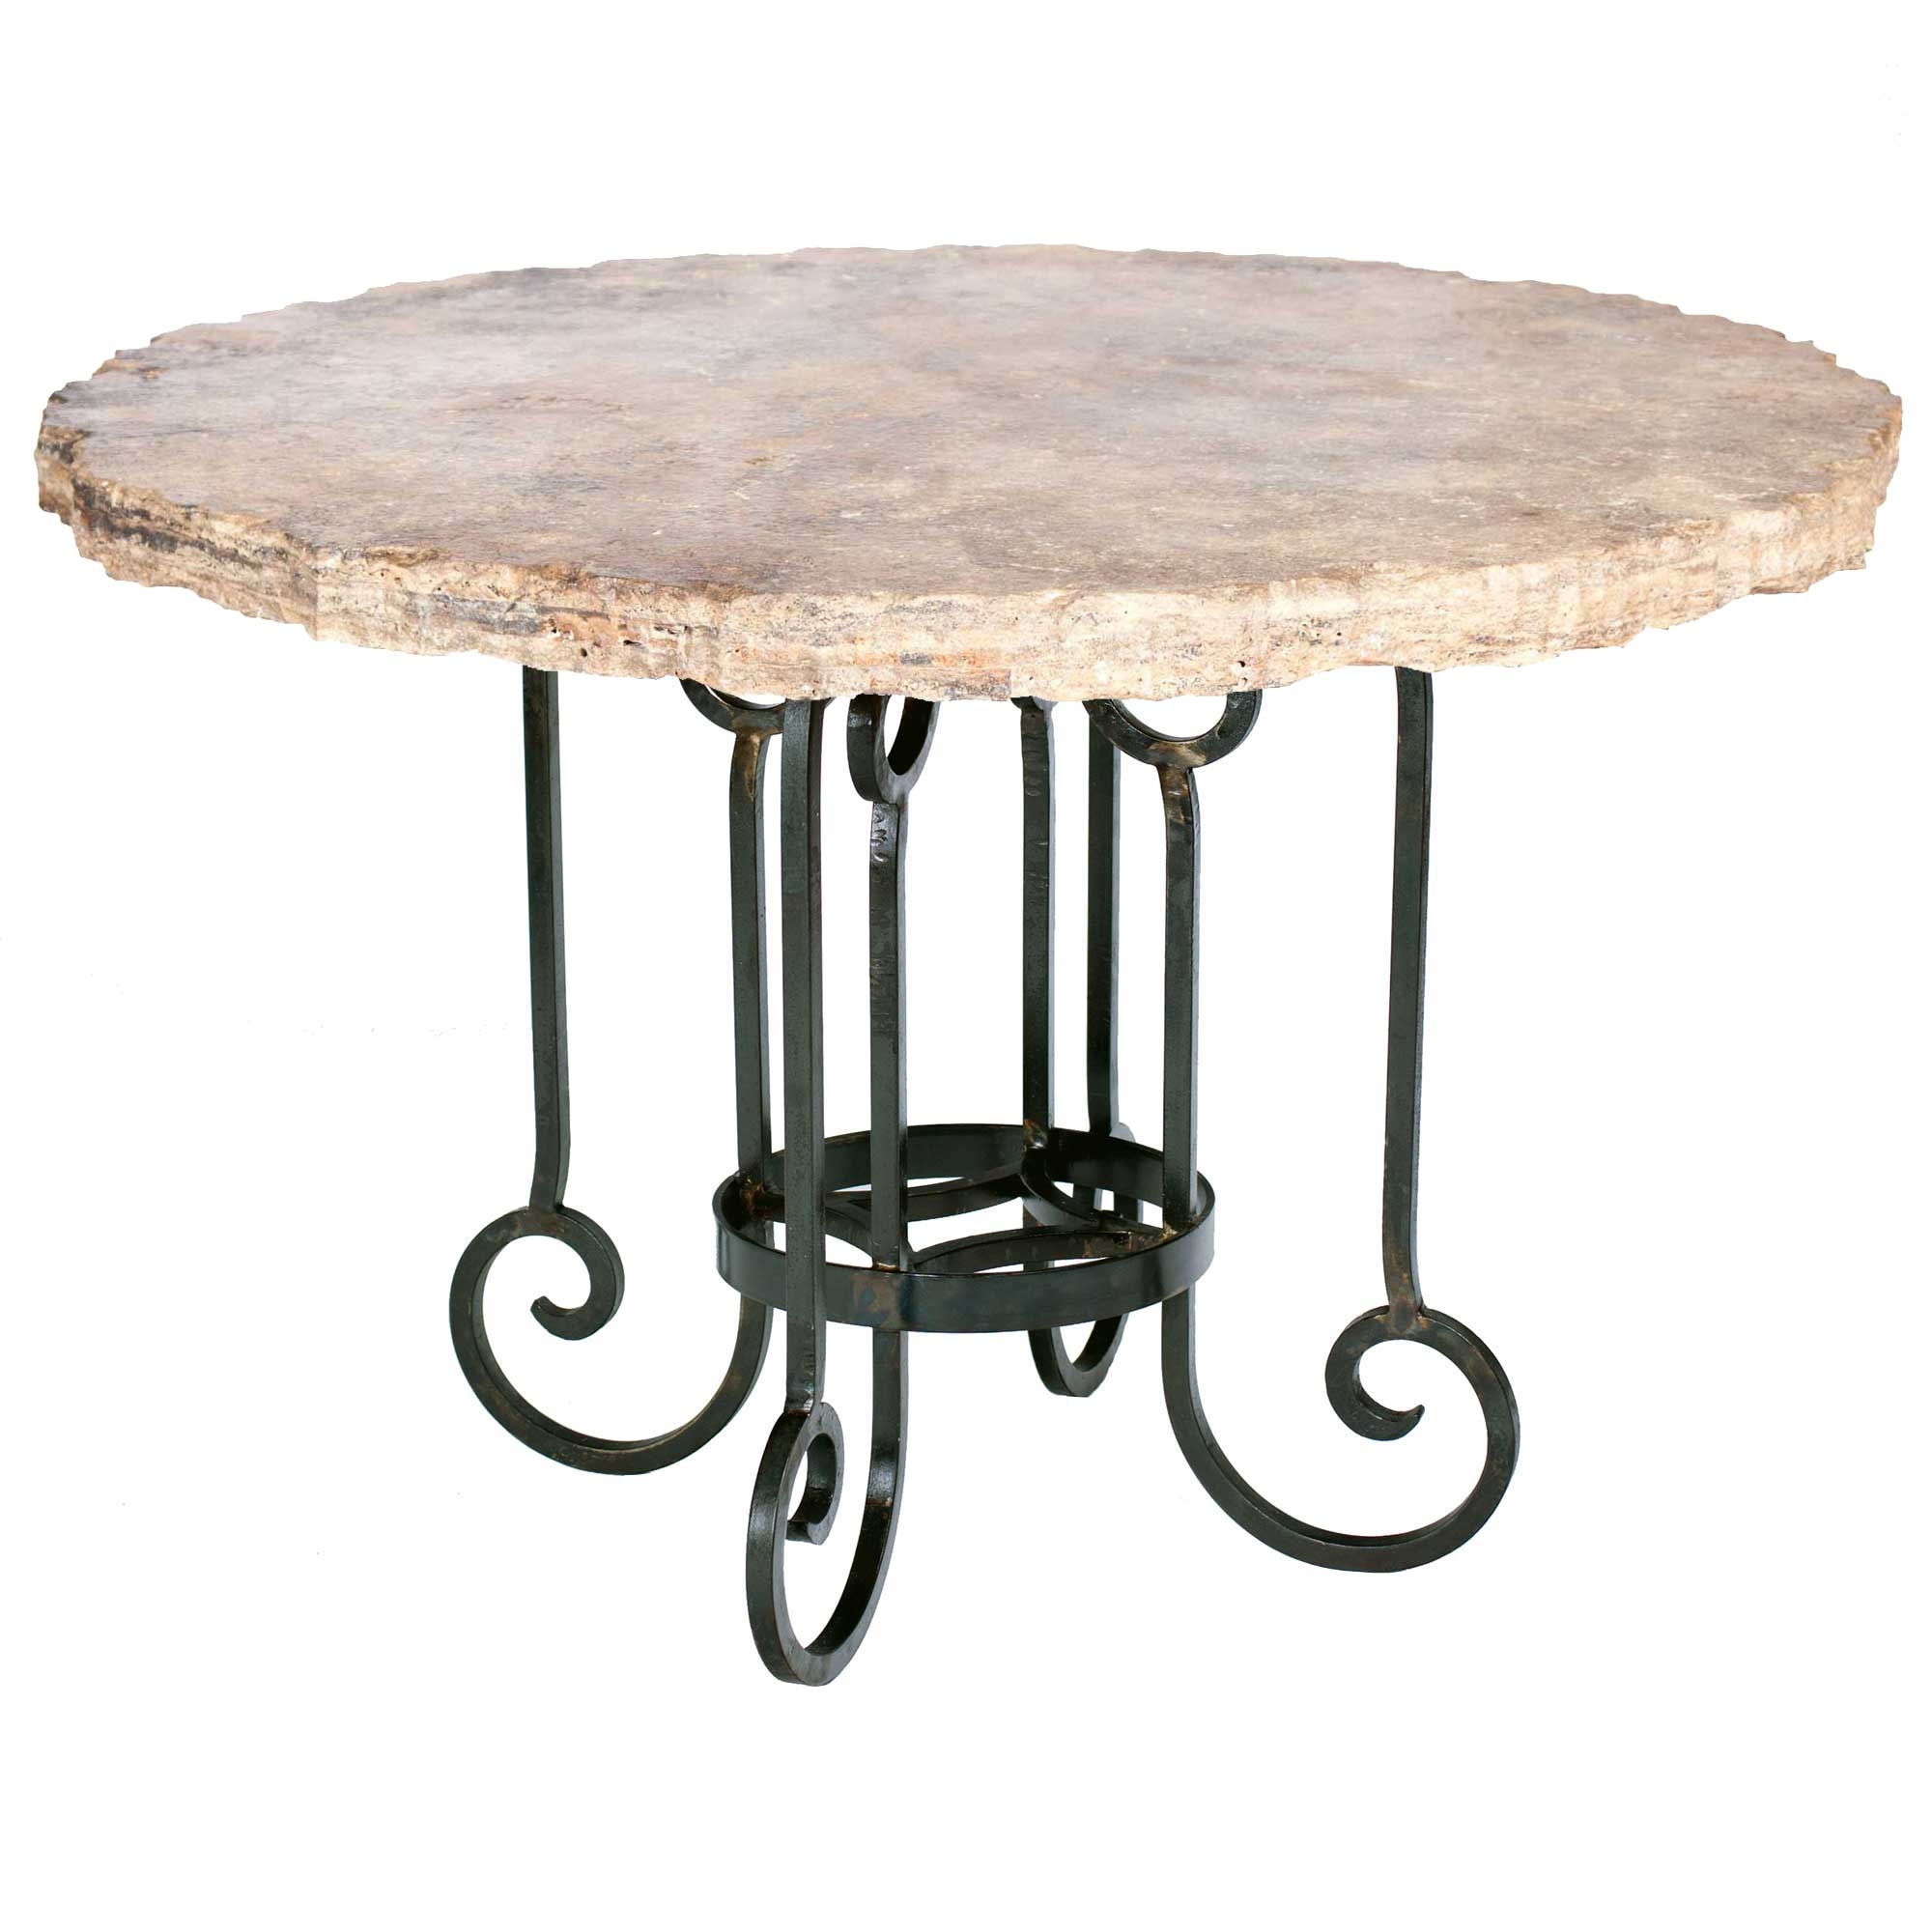 curled leg iron dining table with 60 round marble top. Black Bedroom Furniture Sets. Home Design Ideas